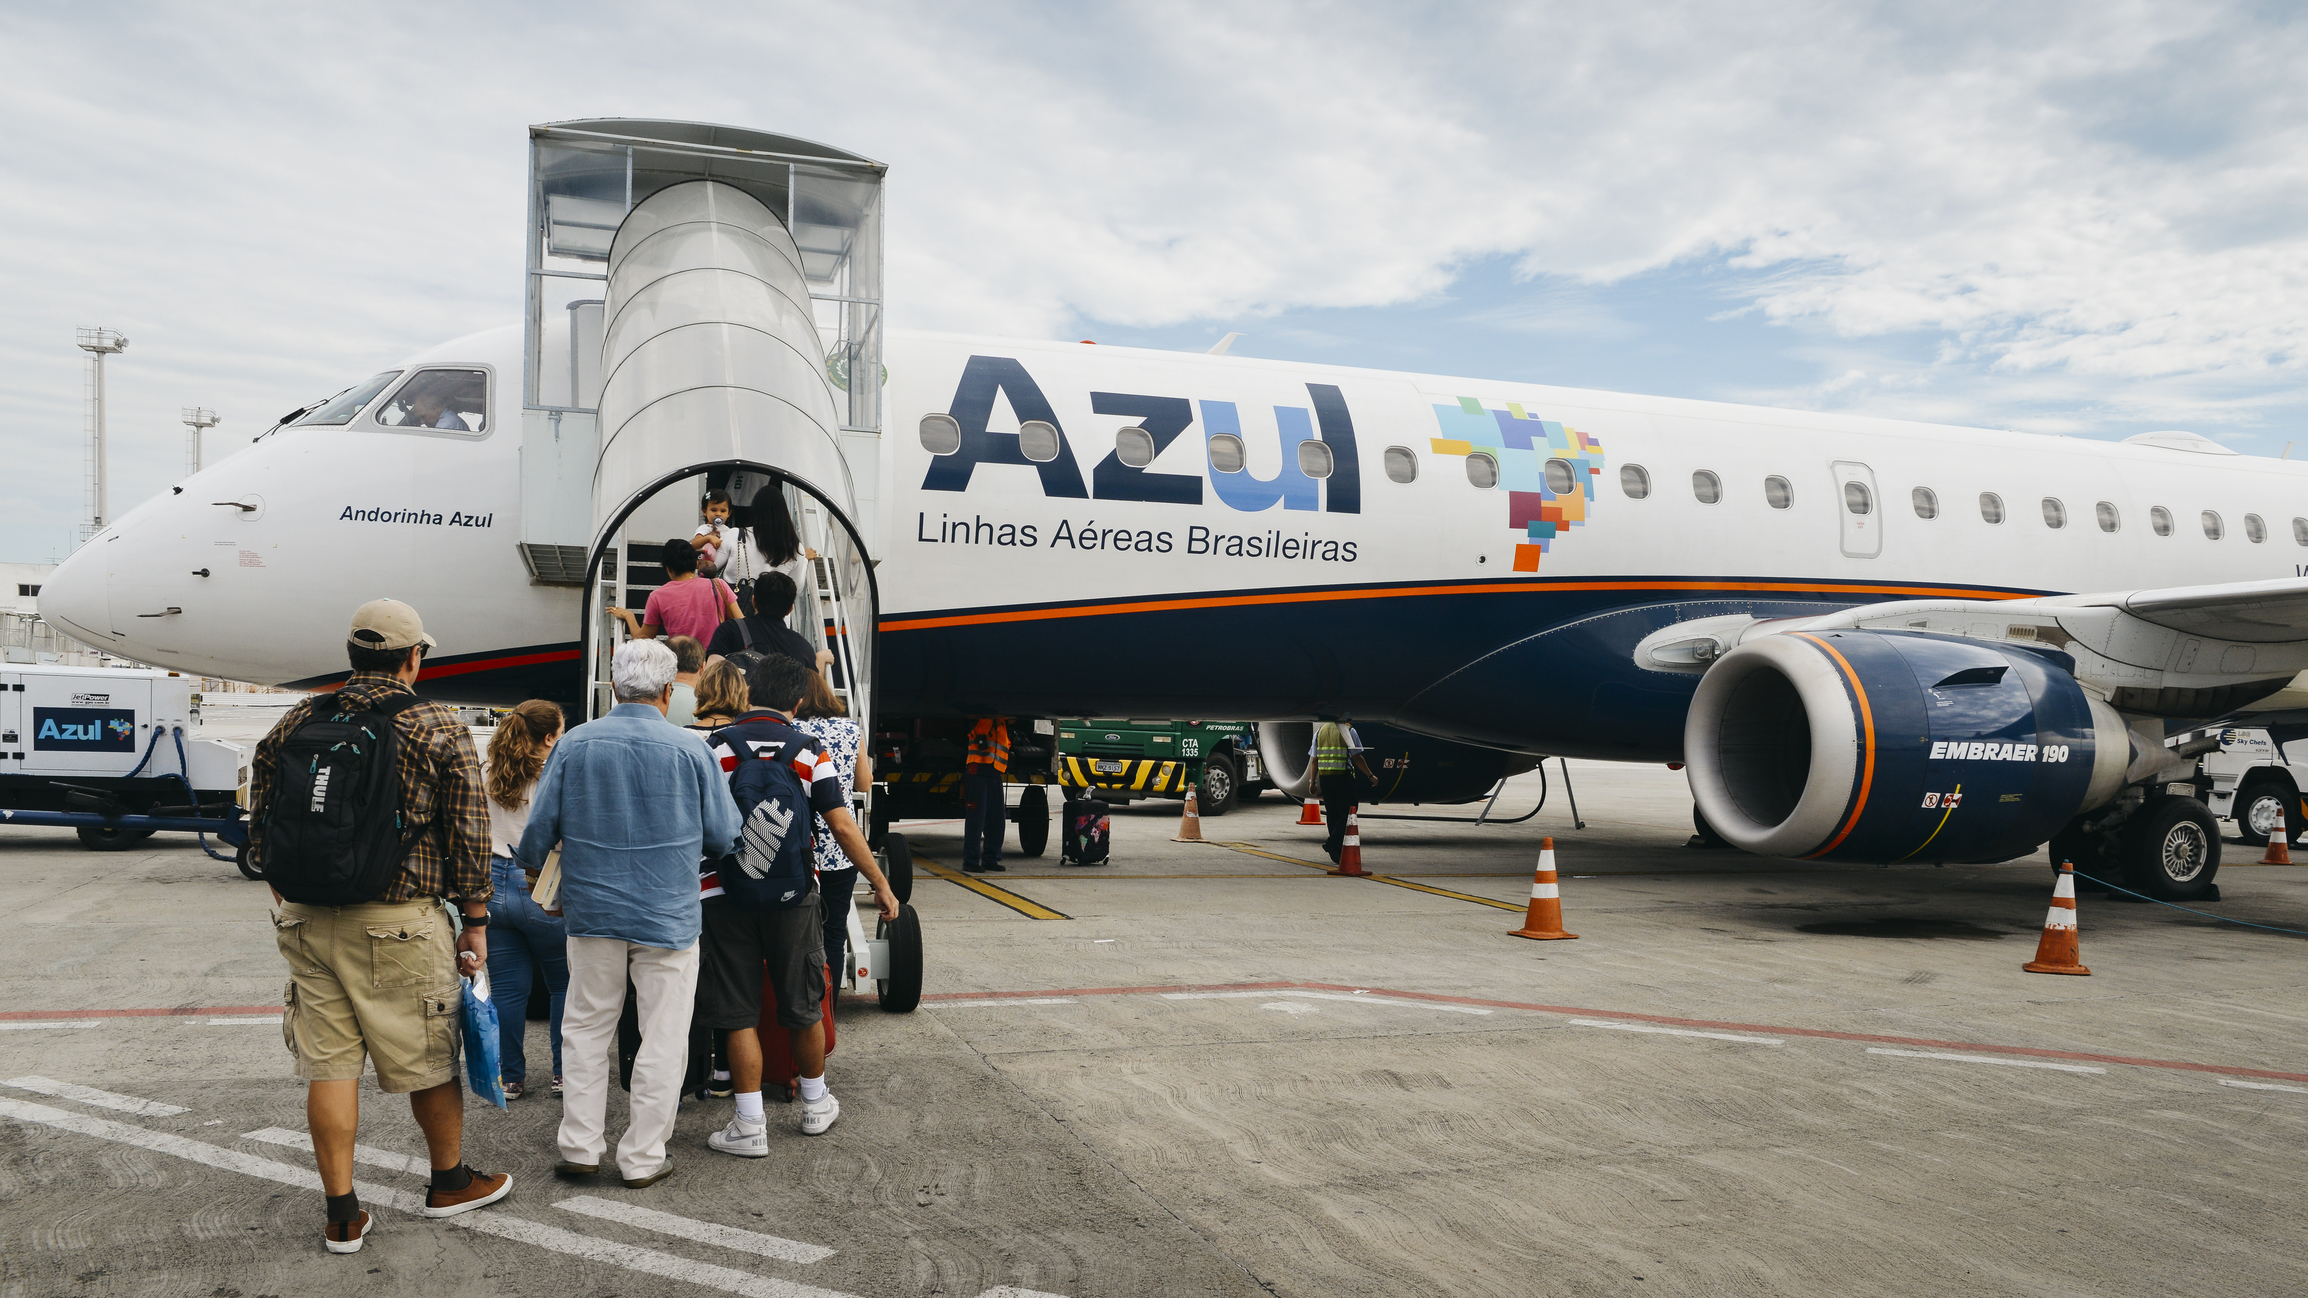 Santos Dumont Airport is a focus city for Azul Brazilian Airlines.